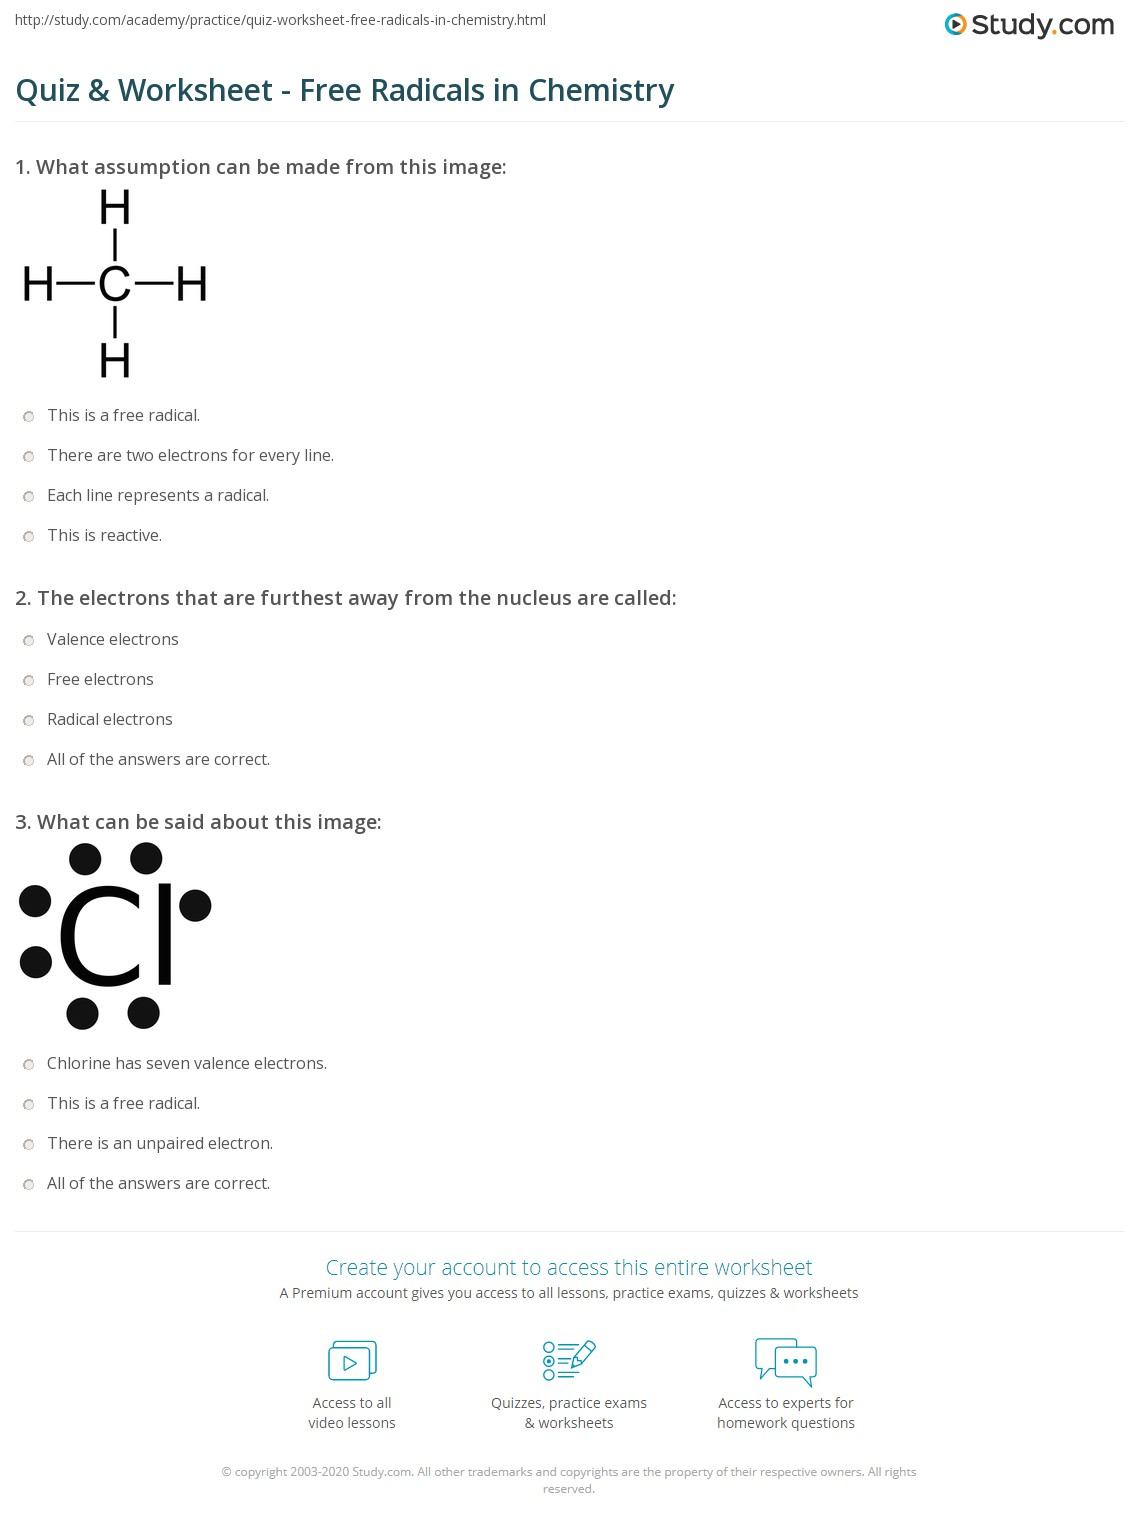 hight resolution of Quiz \u0026 Worksheet - Free Radicals in Chemistry   Study.com